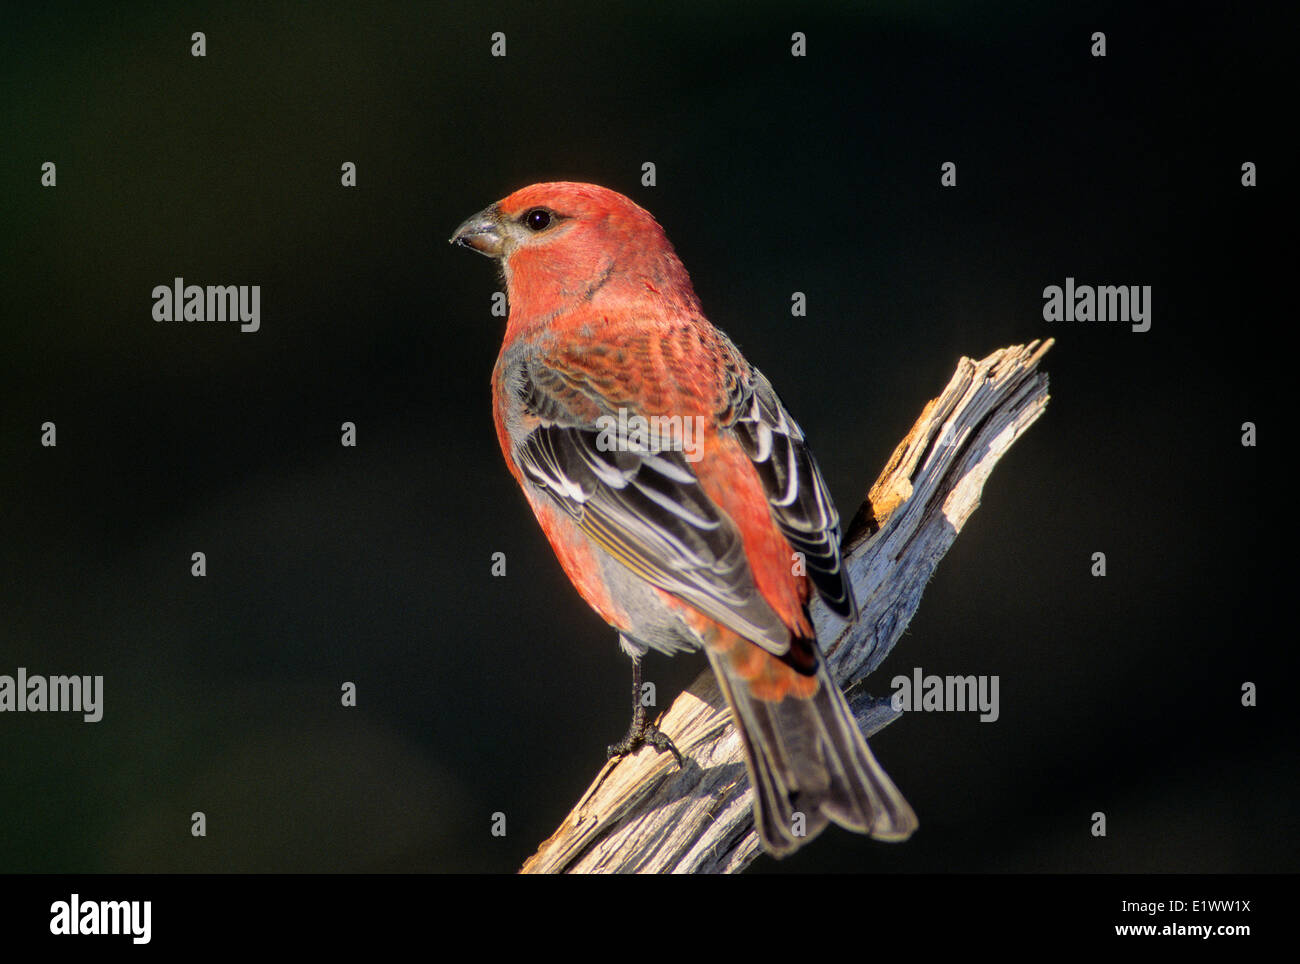 Pine Grosbeak (Pinicola enucleator) Adult Male forages in trees bushes mainly eating seeds buds berries insects. Stock Photo